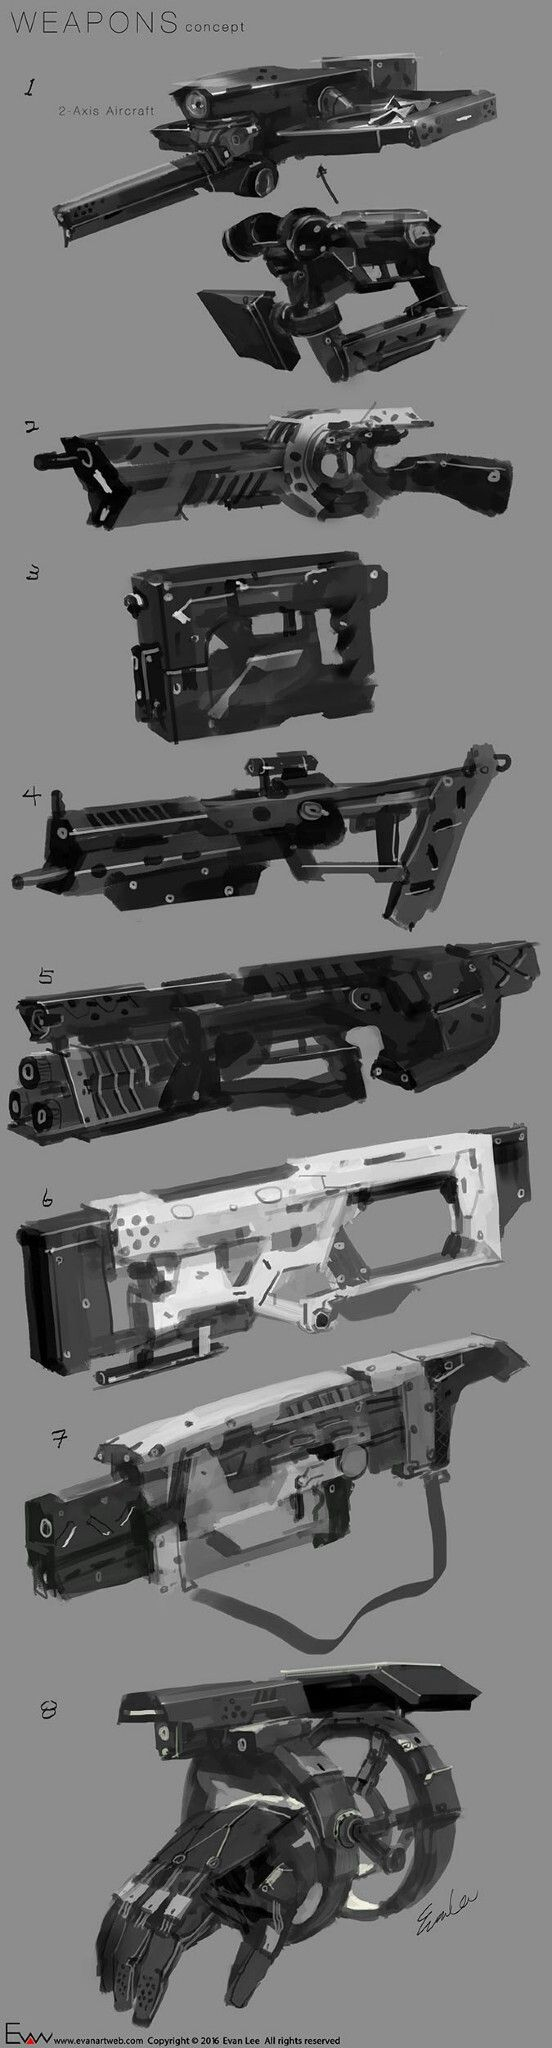 Just some of my recent ideas of weapon